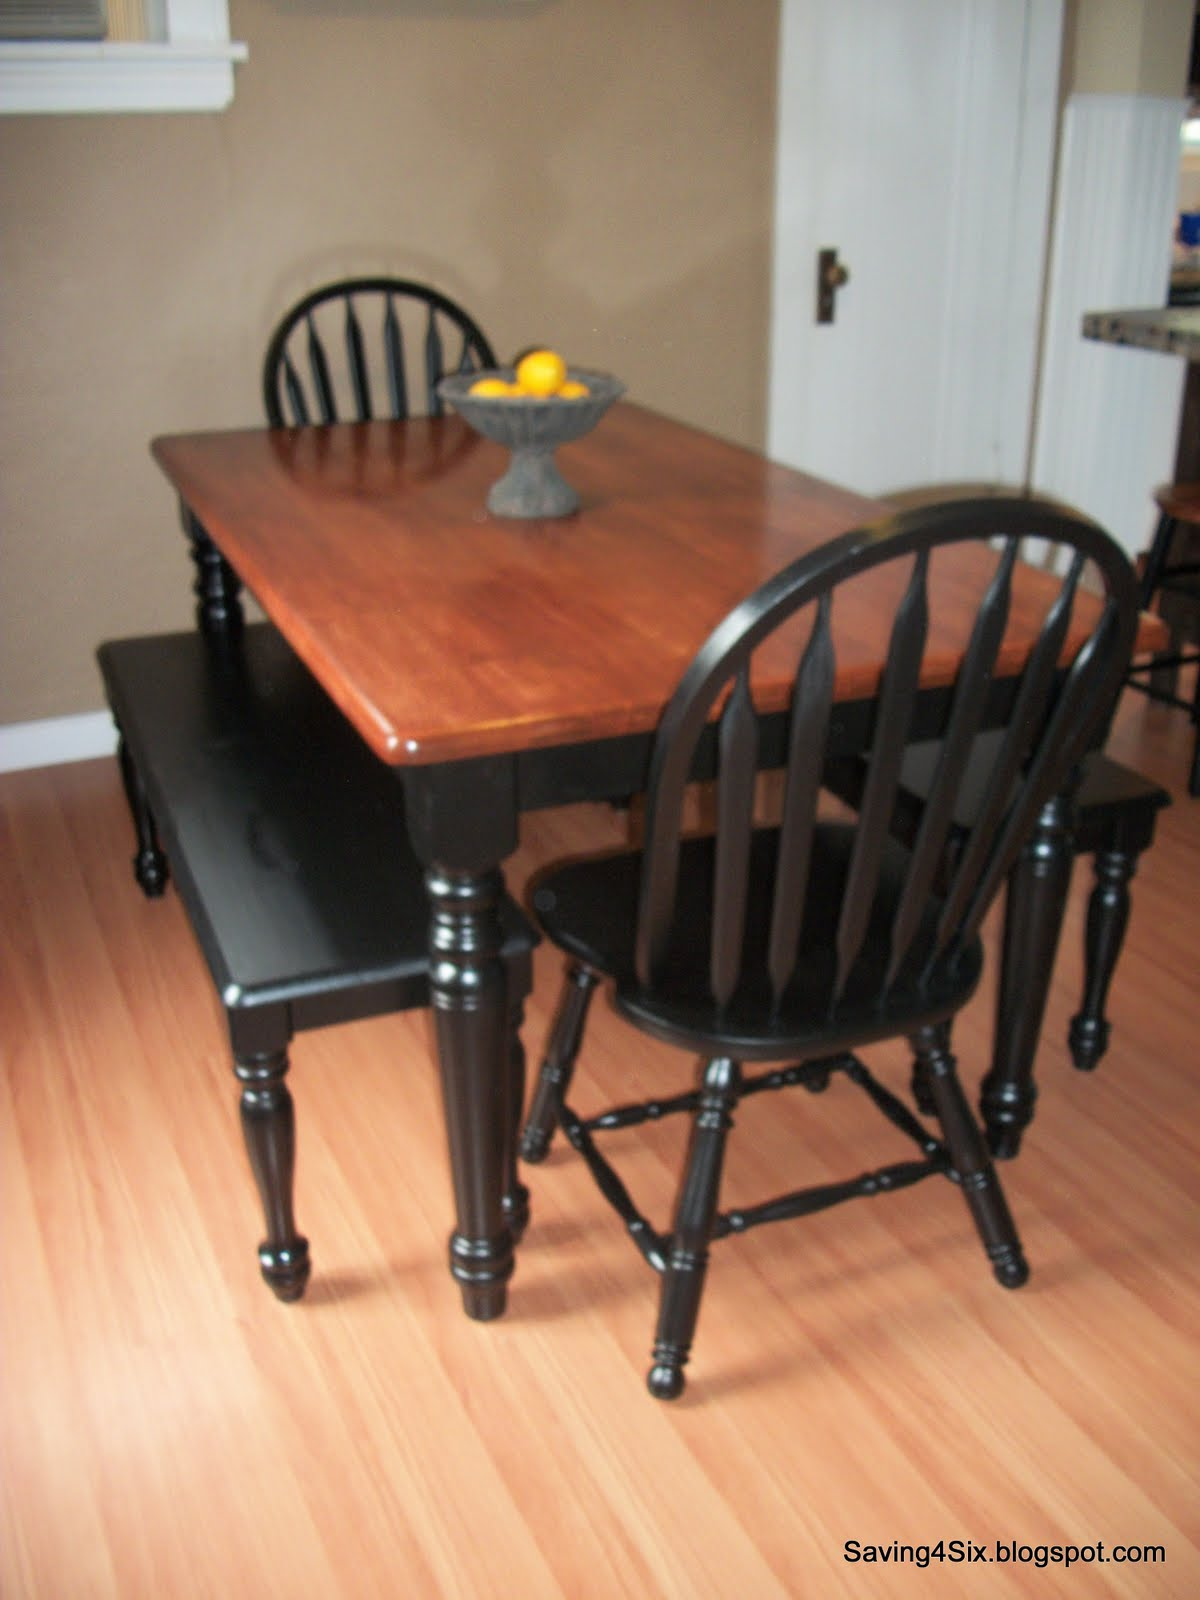 Refinishing The Dining Room Table